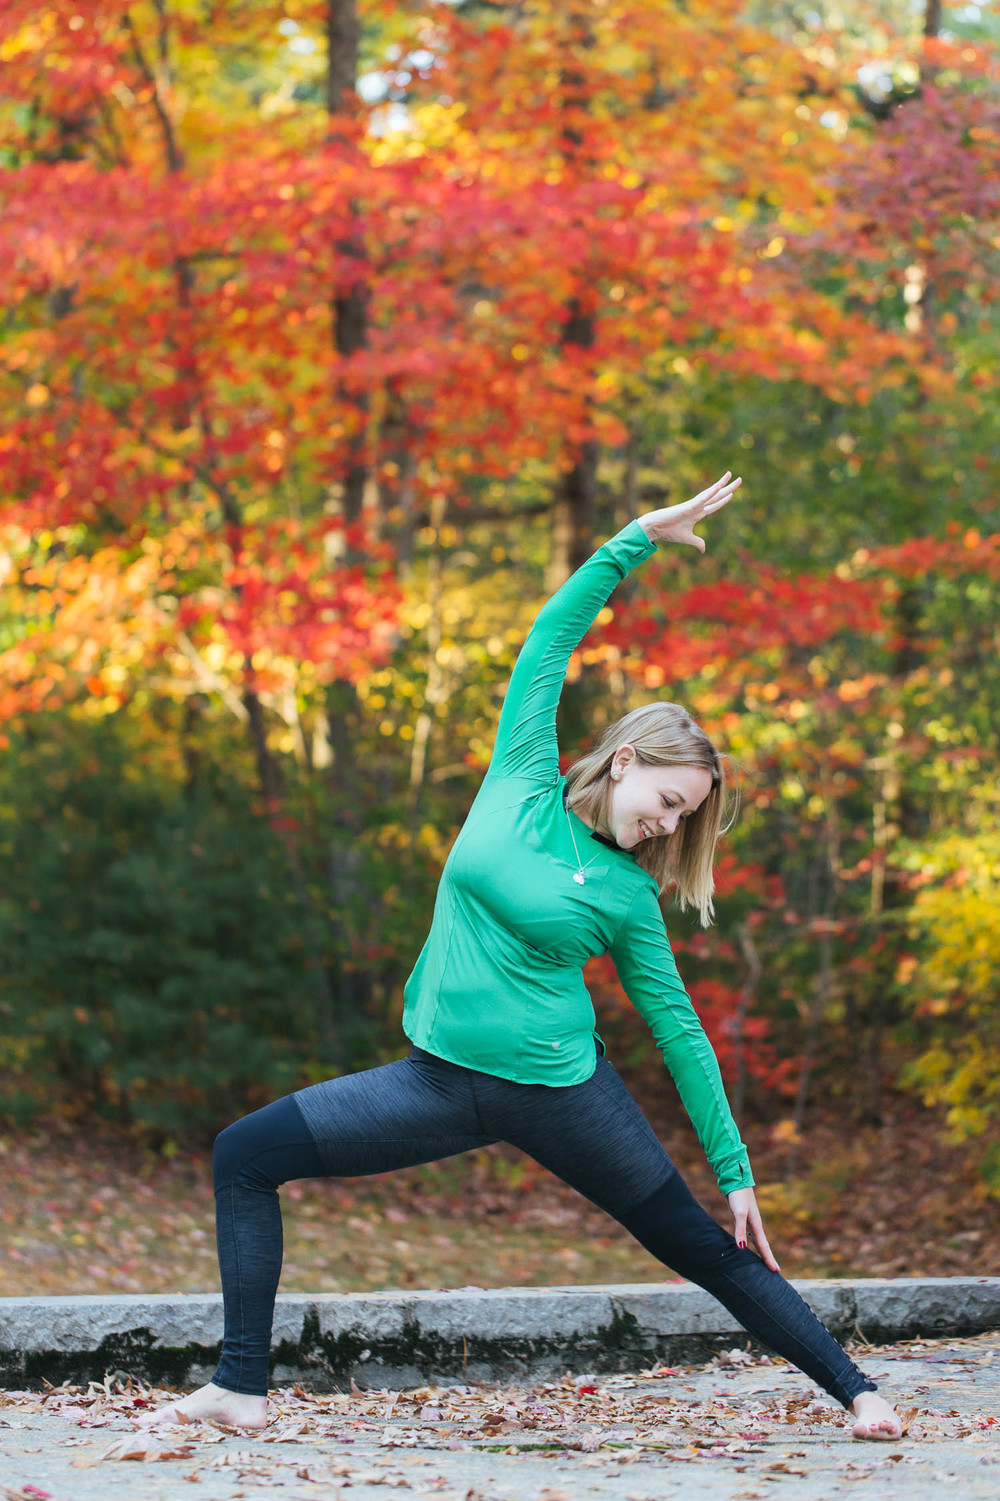 universal-power-yoga-teacher-training-norwood-ma-yoga-photographer-5760.jpg